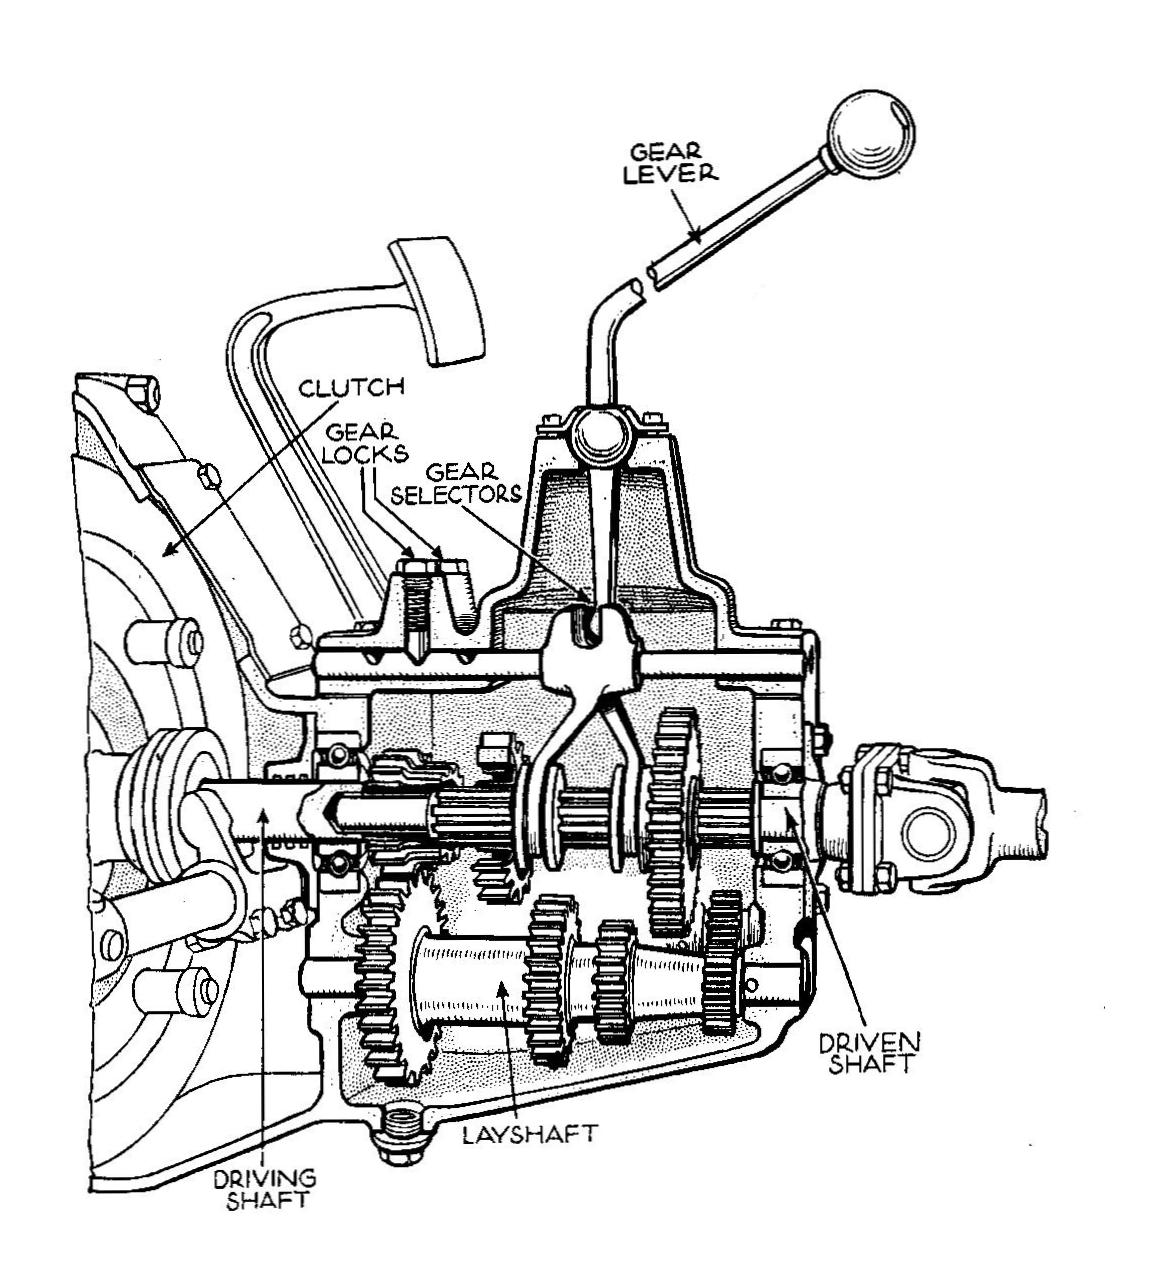 Layshaft on chevy 5 7 engine diagram